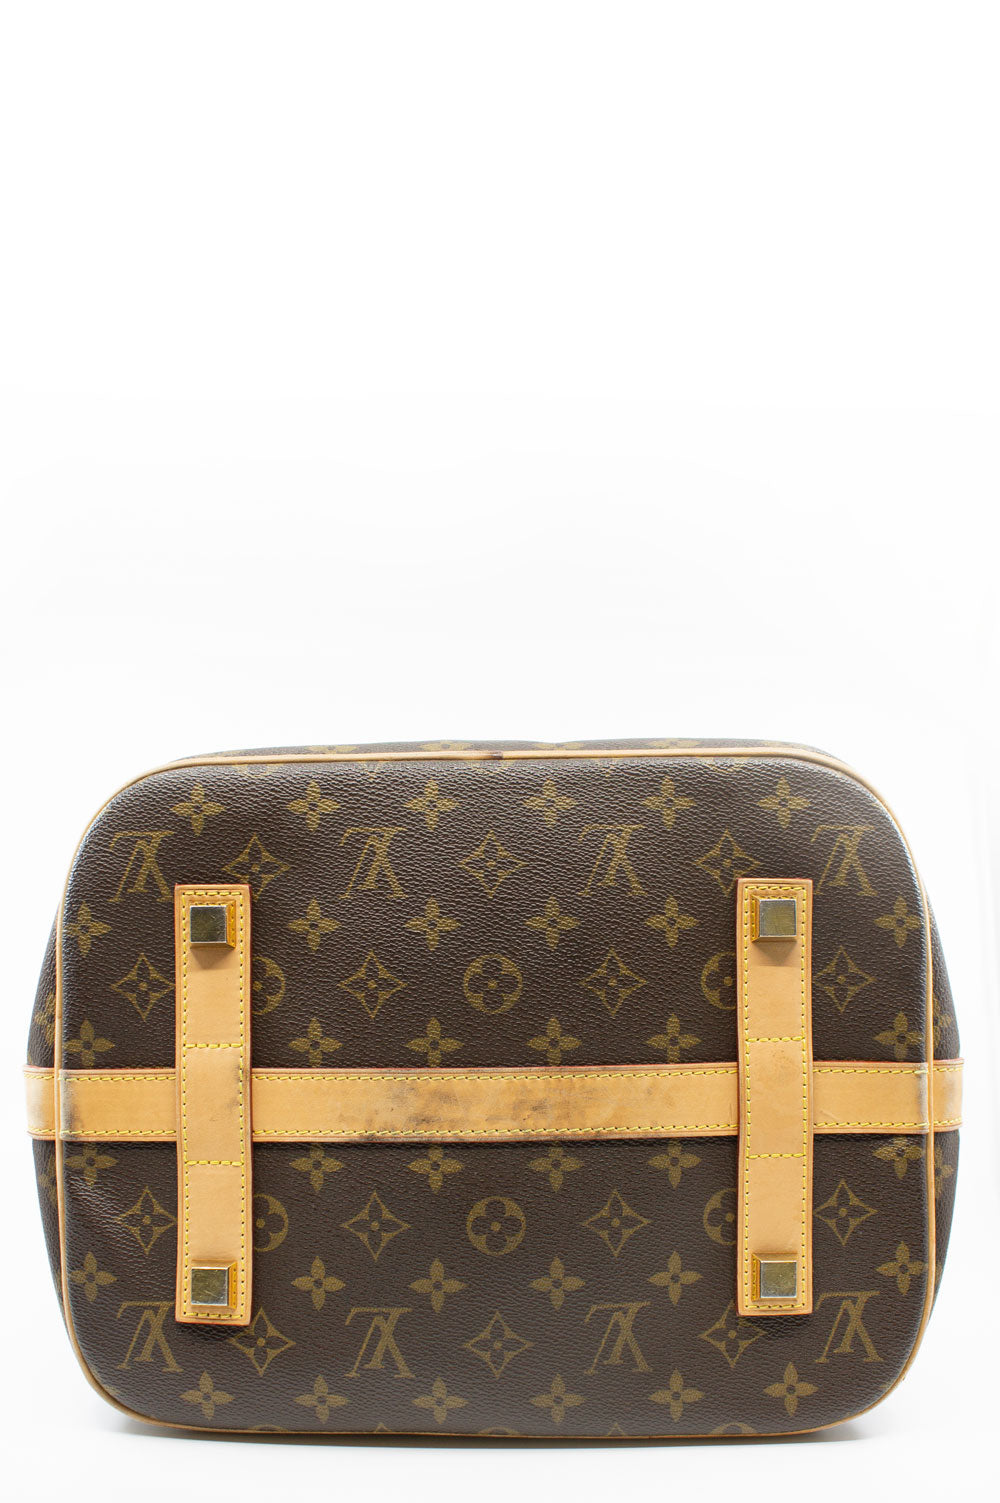 LOUIS VUITTON Eden Neo Bag Monogram Limited Edition